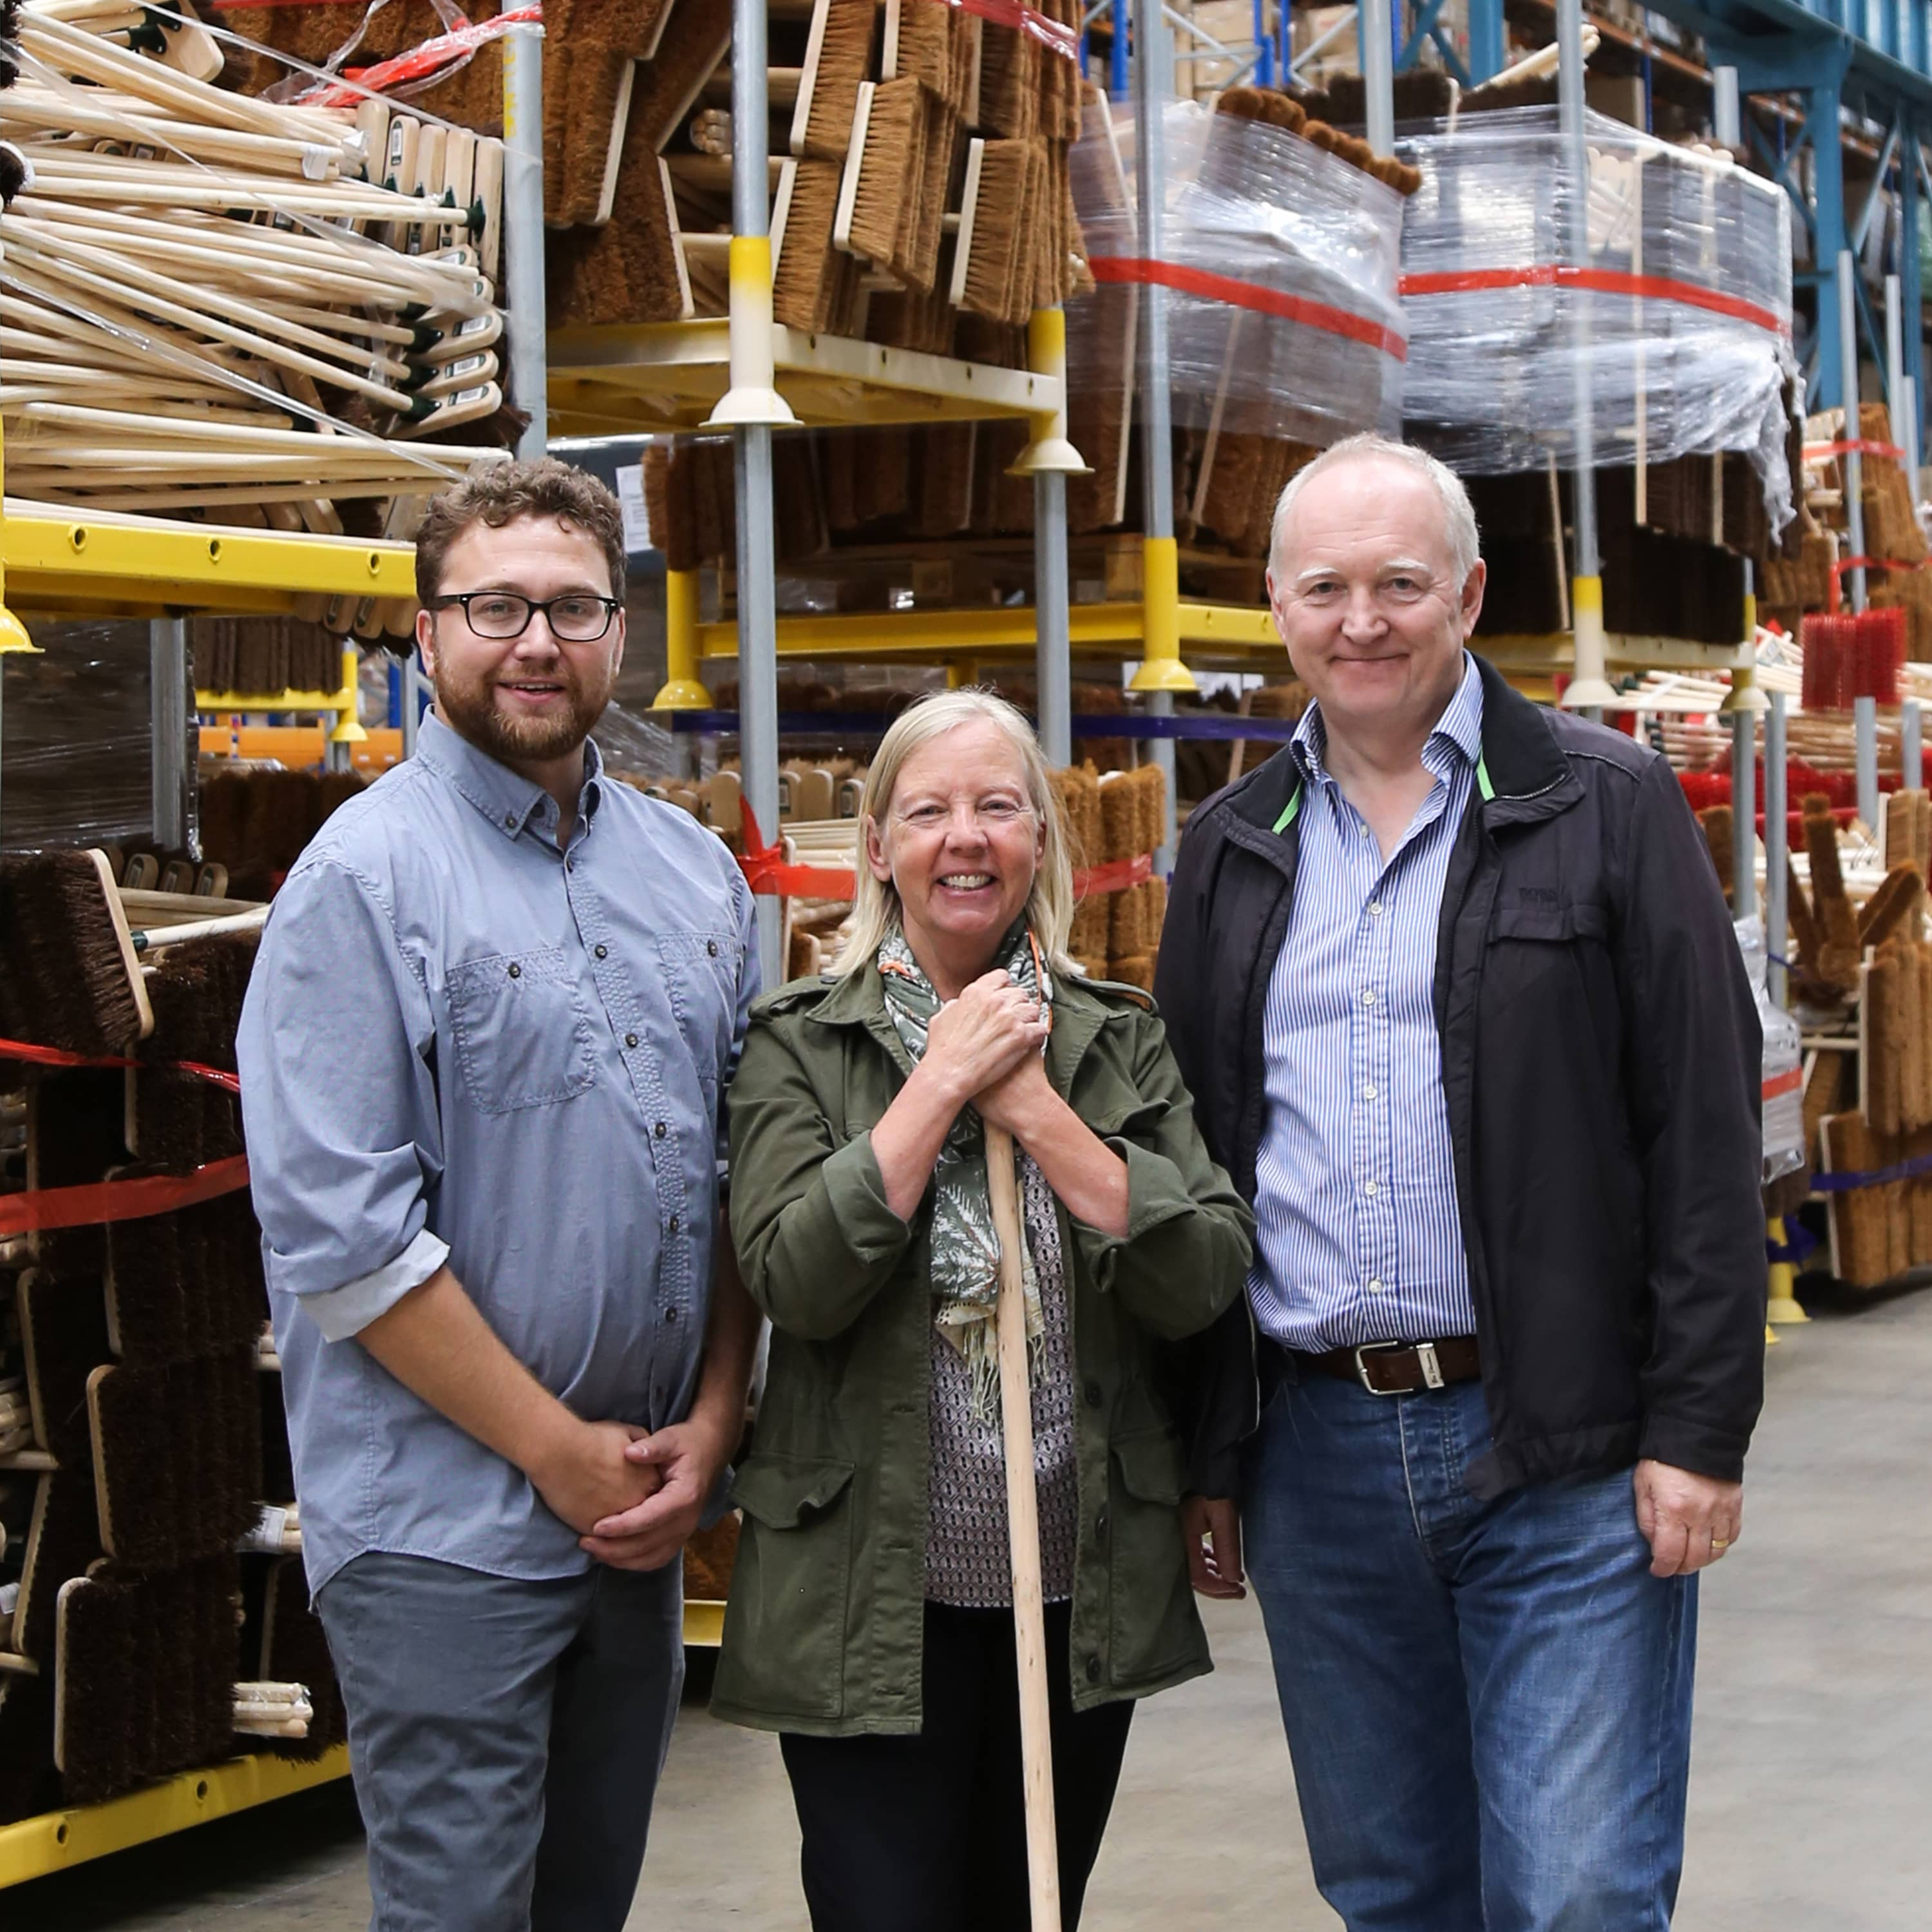 British homeware manufacturer secures multi-million pound deal with top US tool company